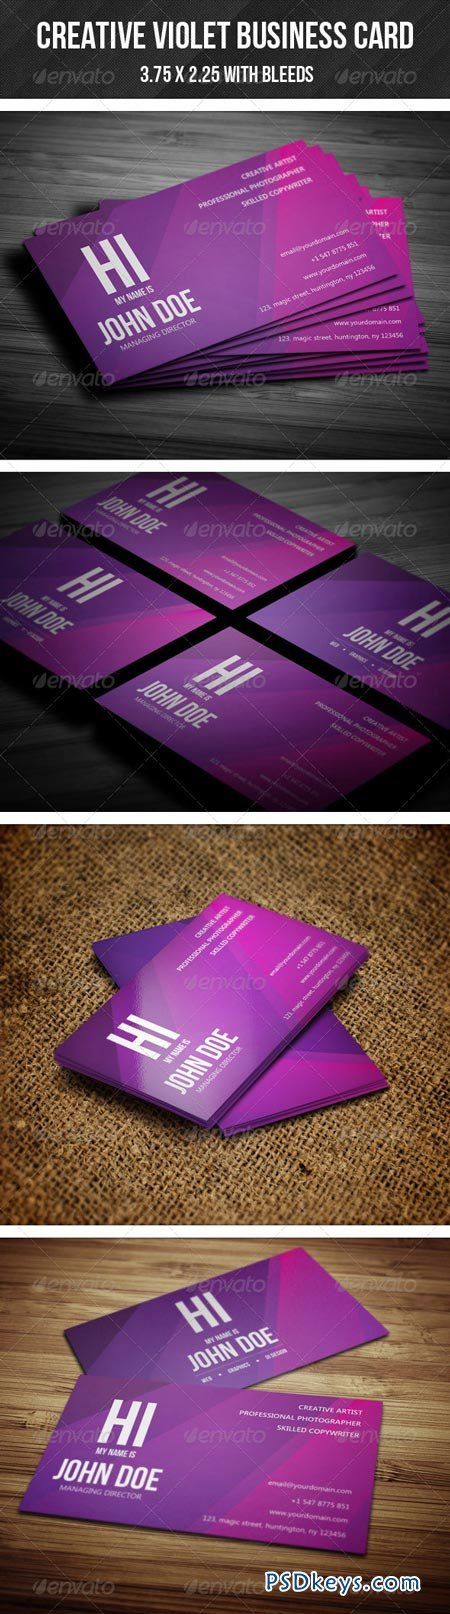 Creative Violet Business Card 02 GraphicRiver